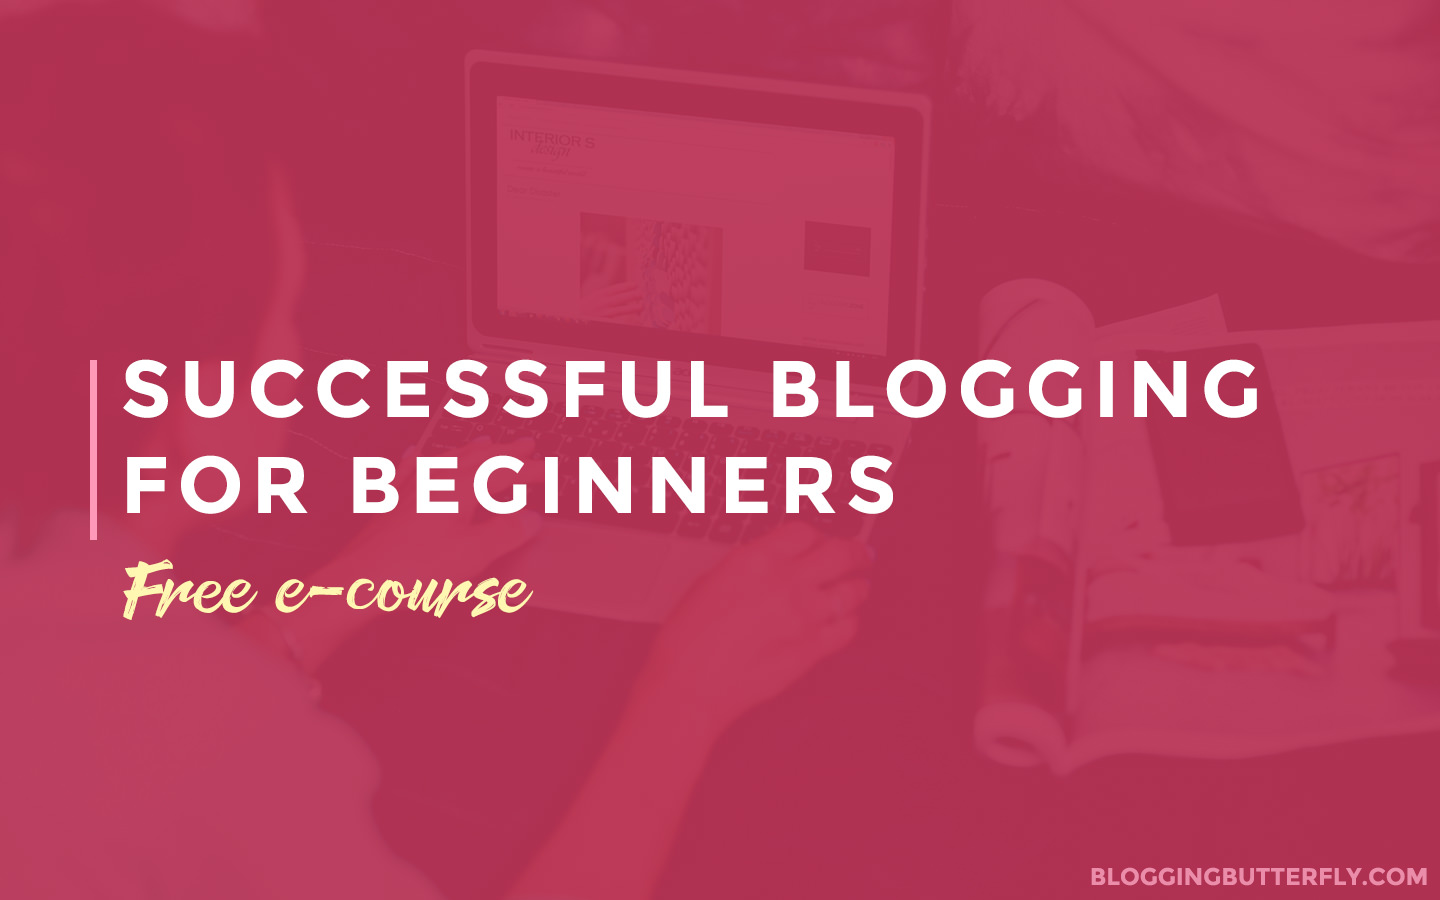 Successful Blogging for Beginners free e-course